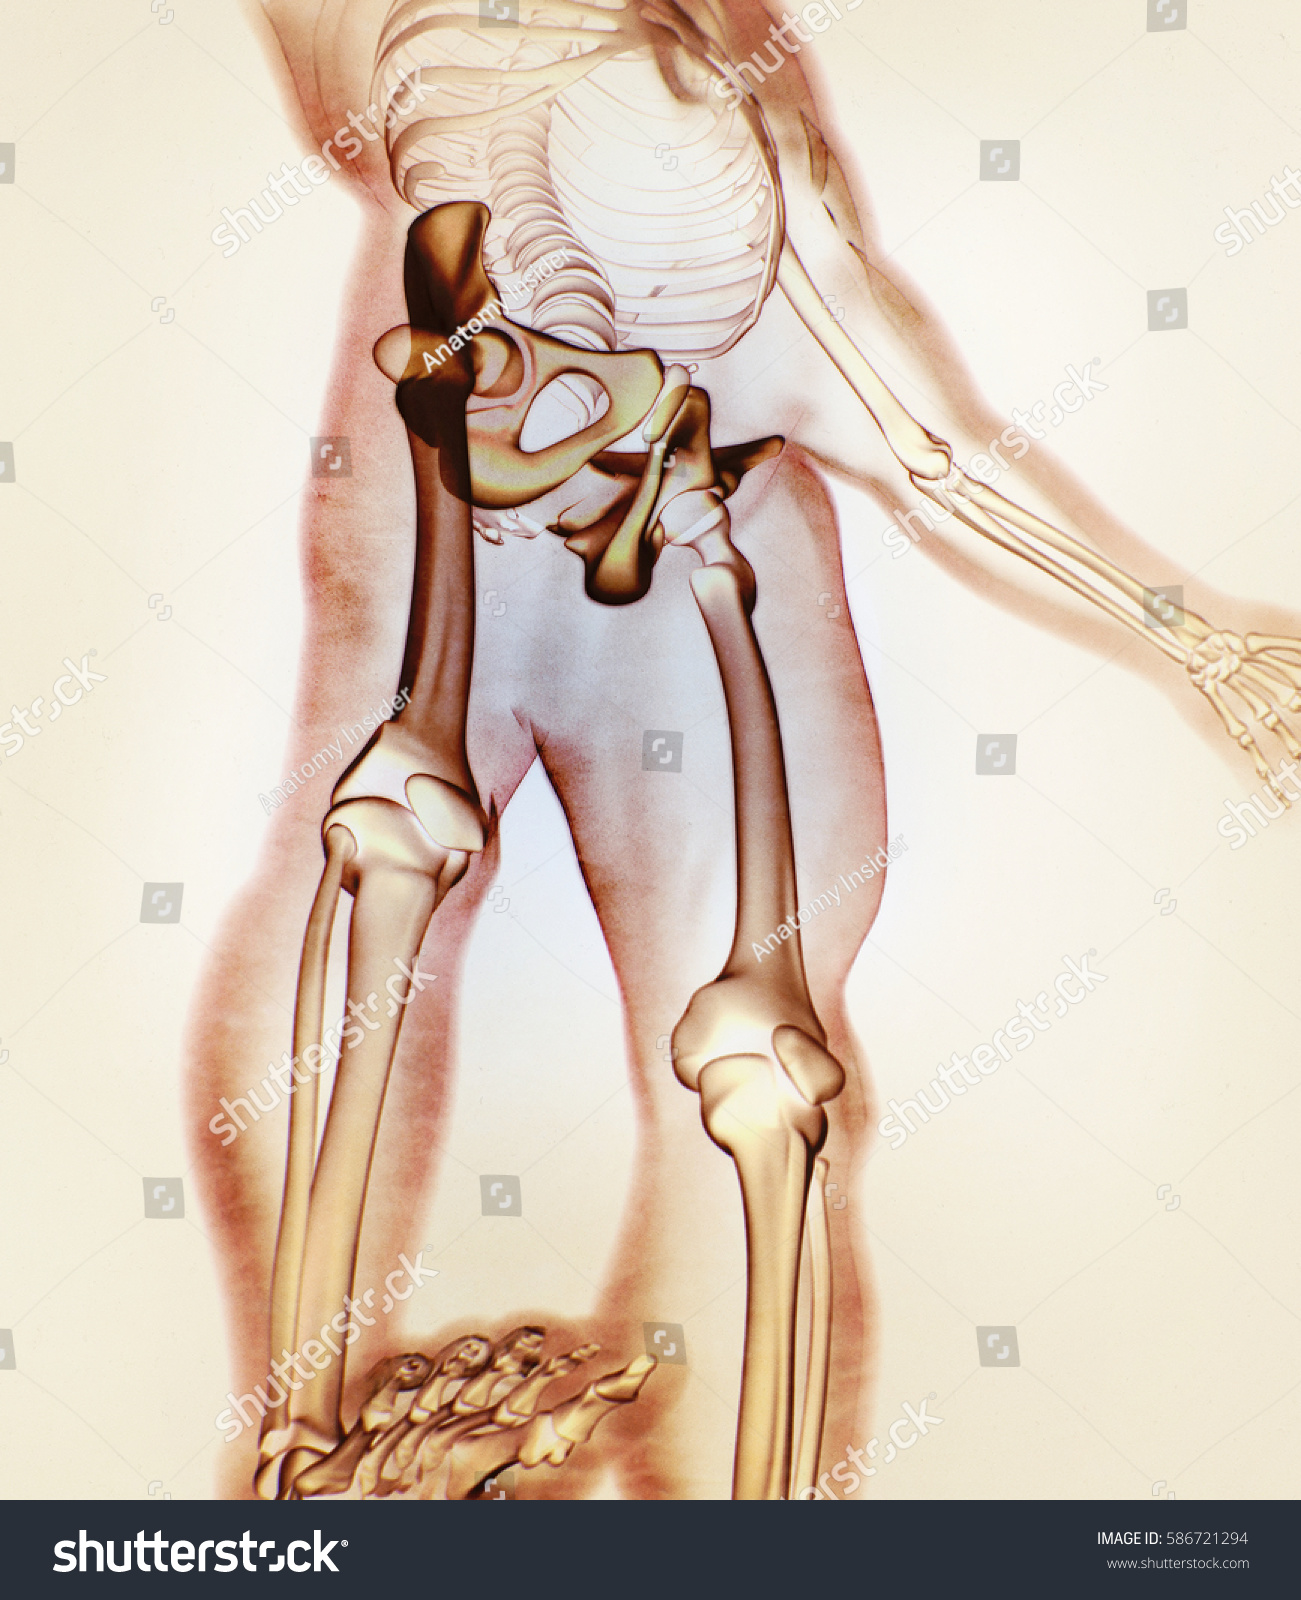 Ilium Bone Hip Bone Pelvis Human Stock Illustration 586721294 ...